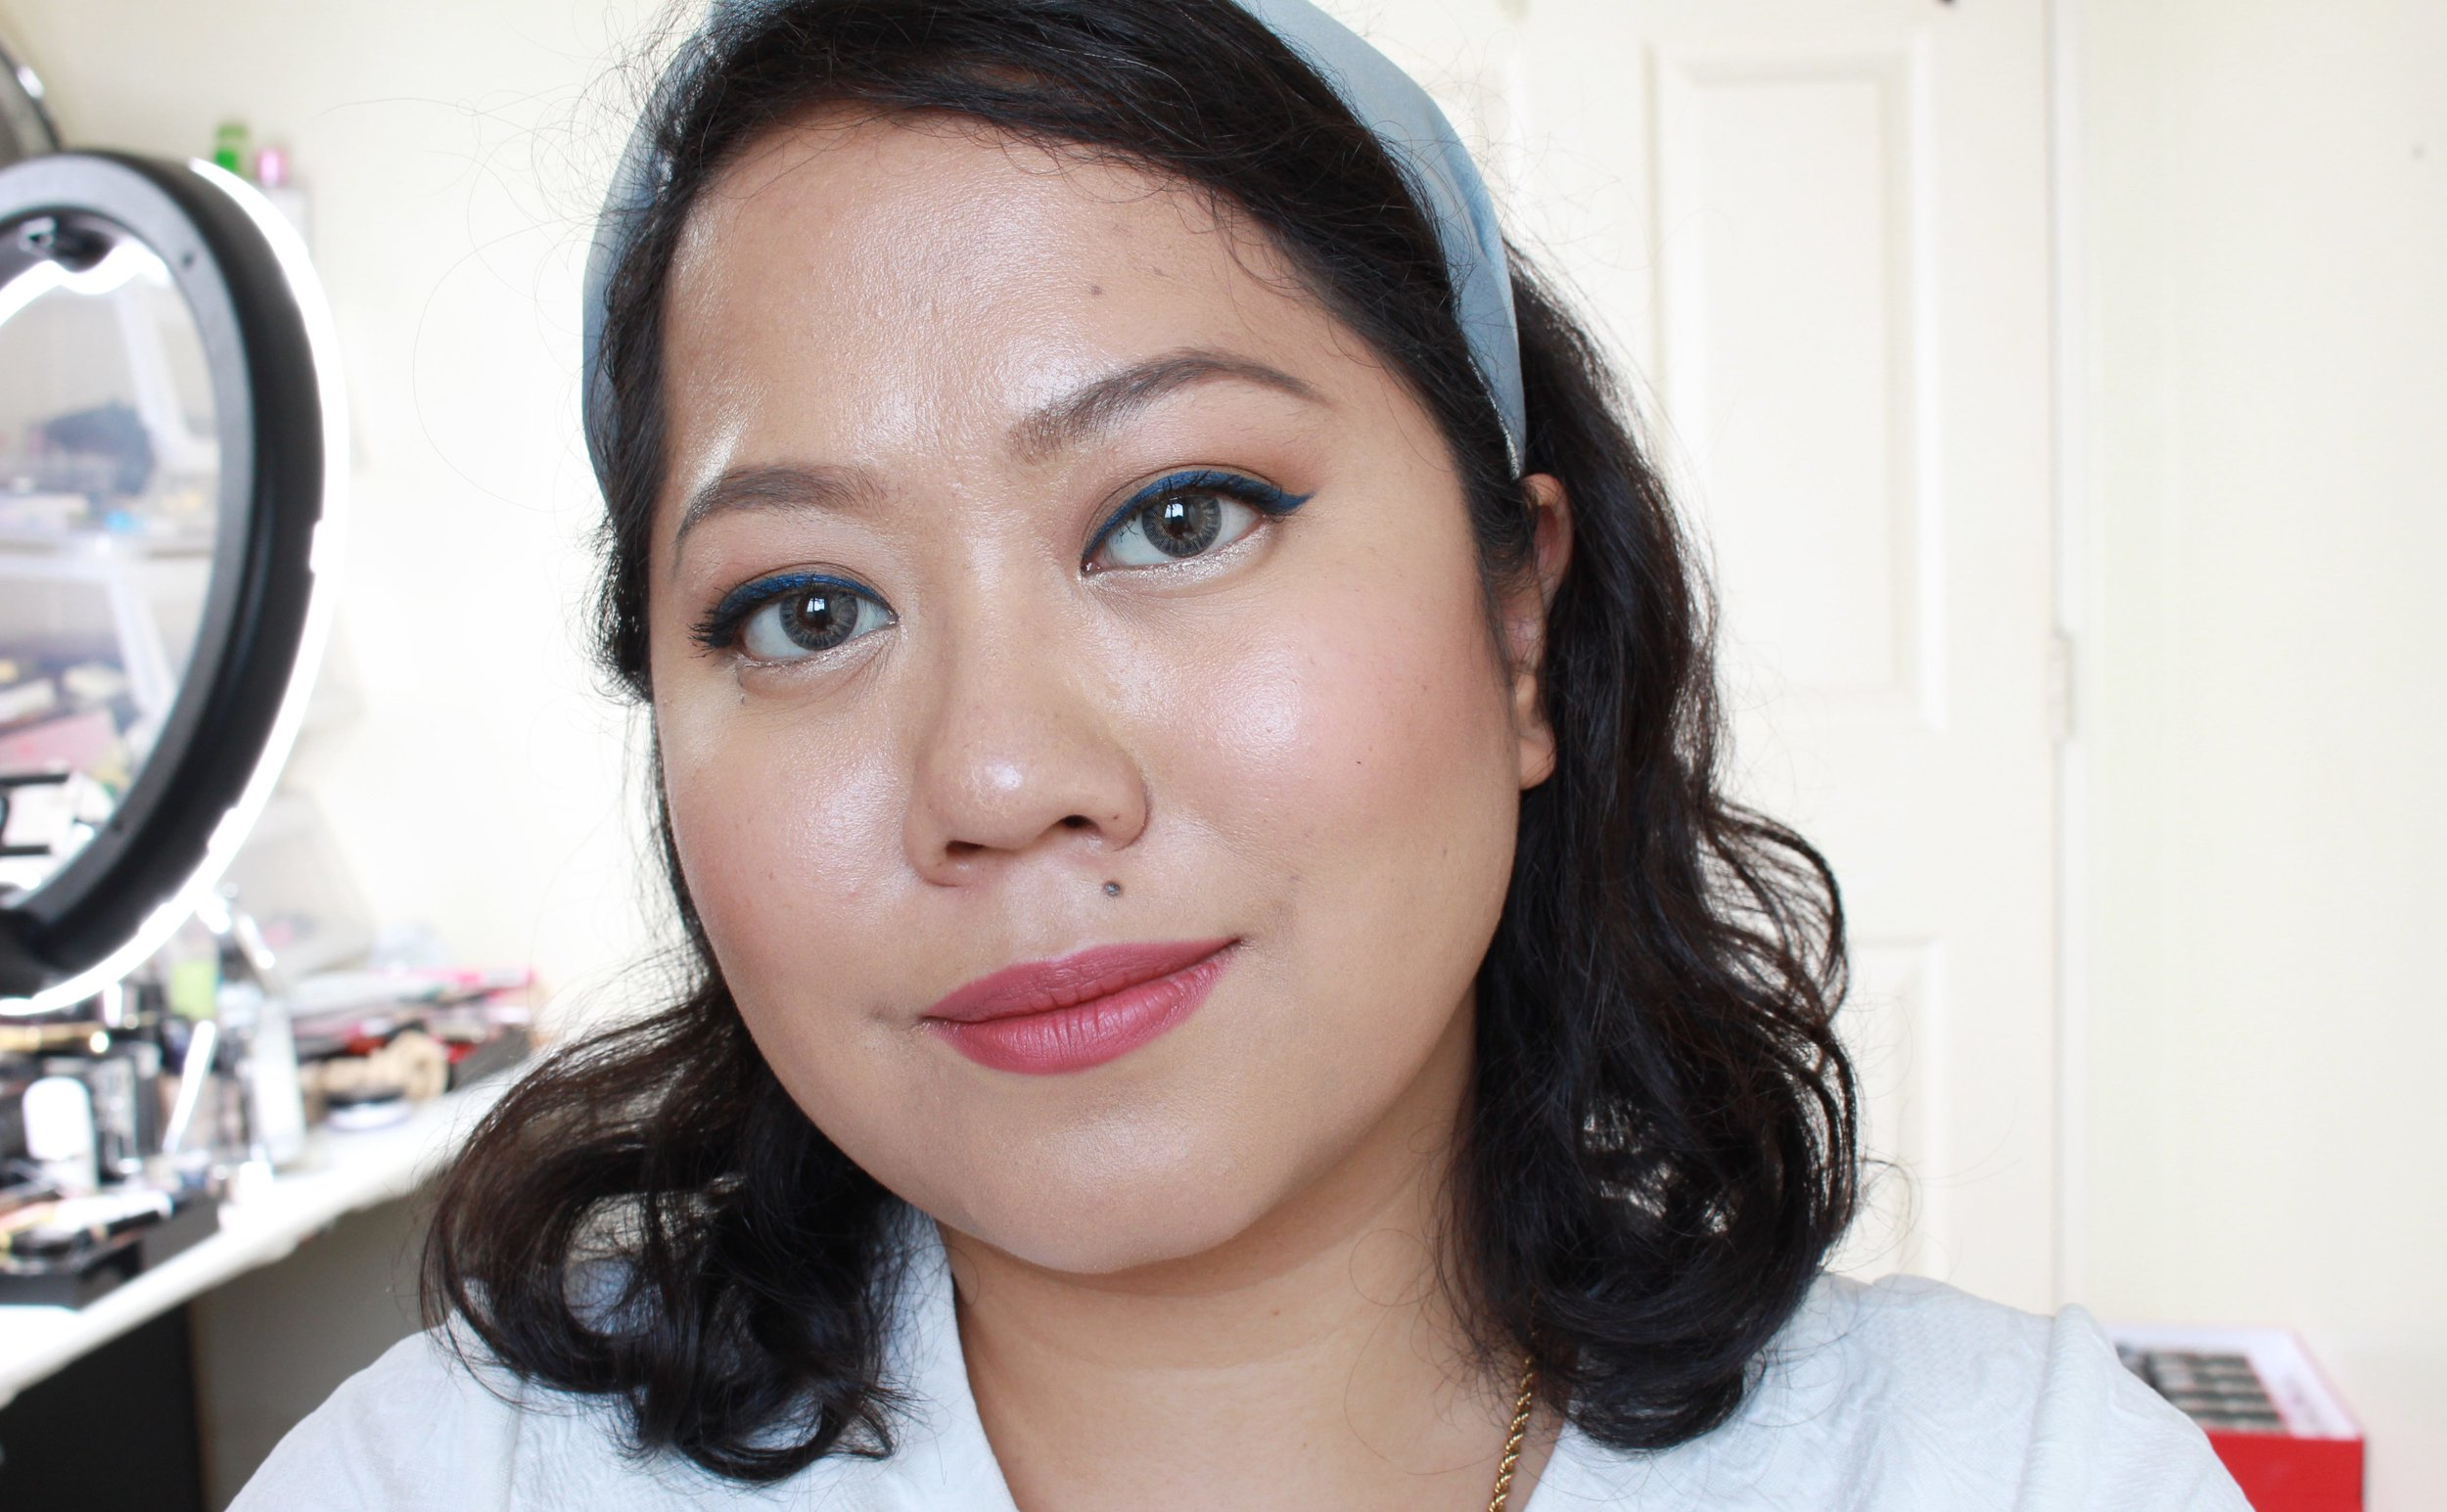 Five hours and one blotting paper after, I get a nice dewy glow! I have not applied any powder here.